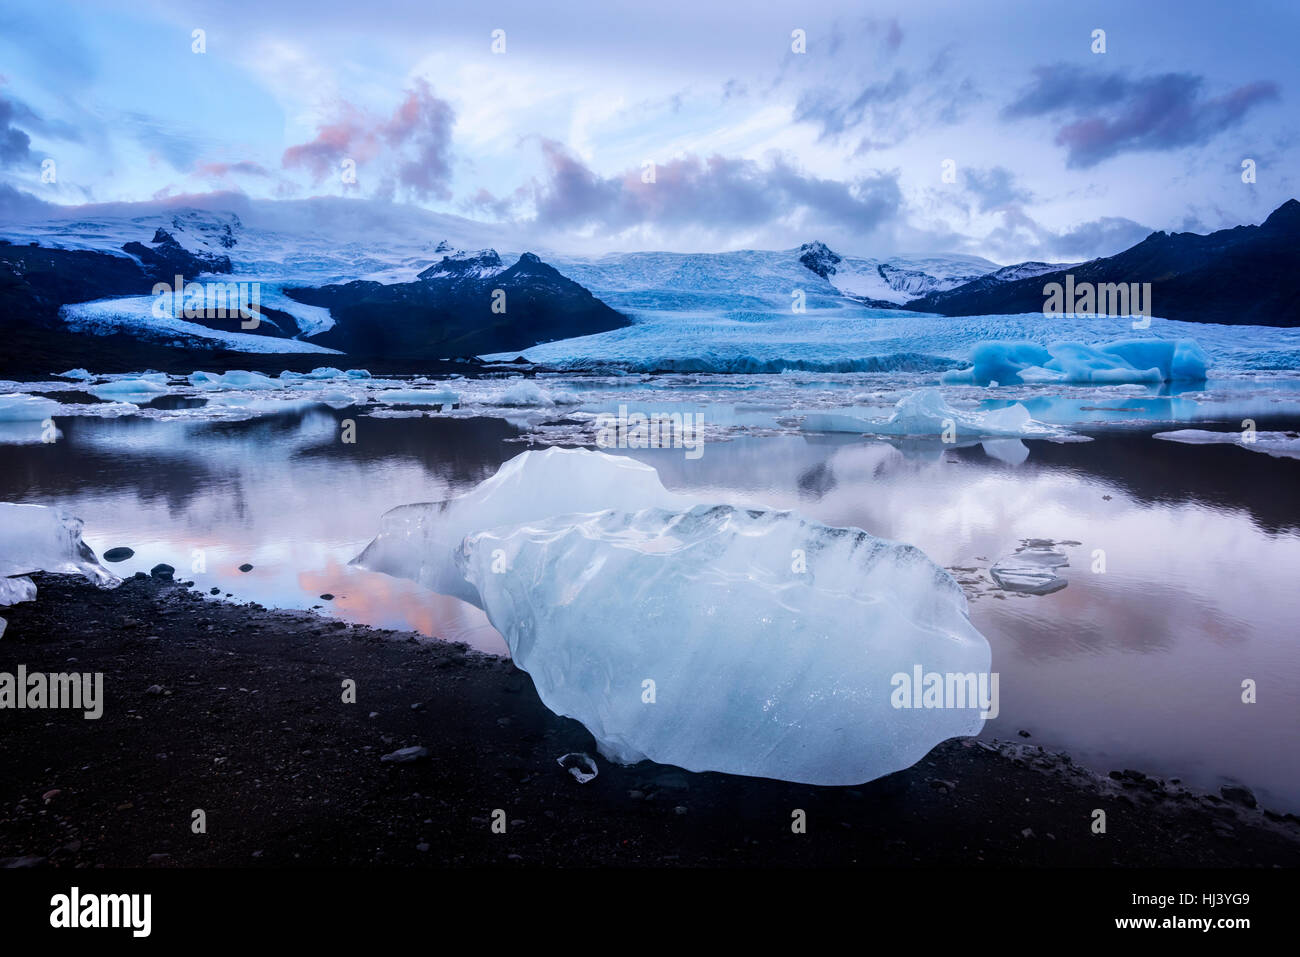 Icebergs along the shore of Jokulsarlon glacial lagoon during a blue overcast day rest motionless while framed by - Stock Image